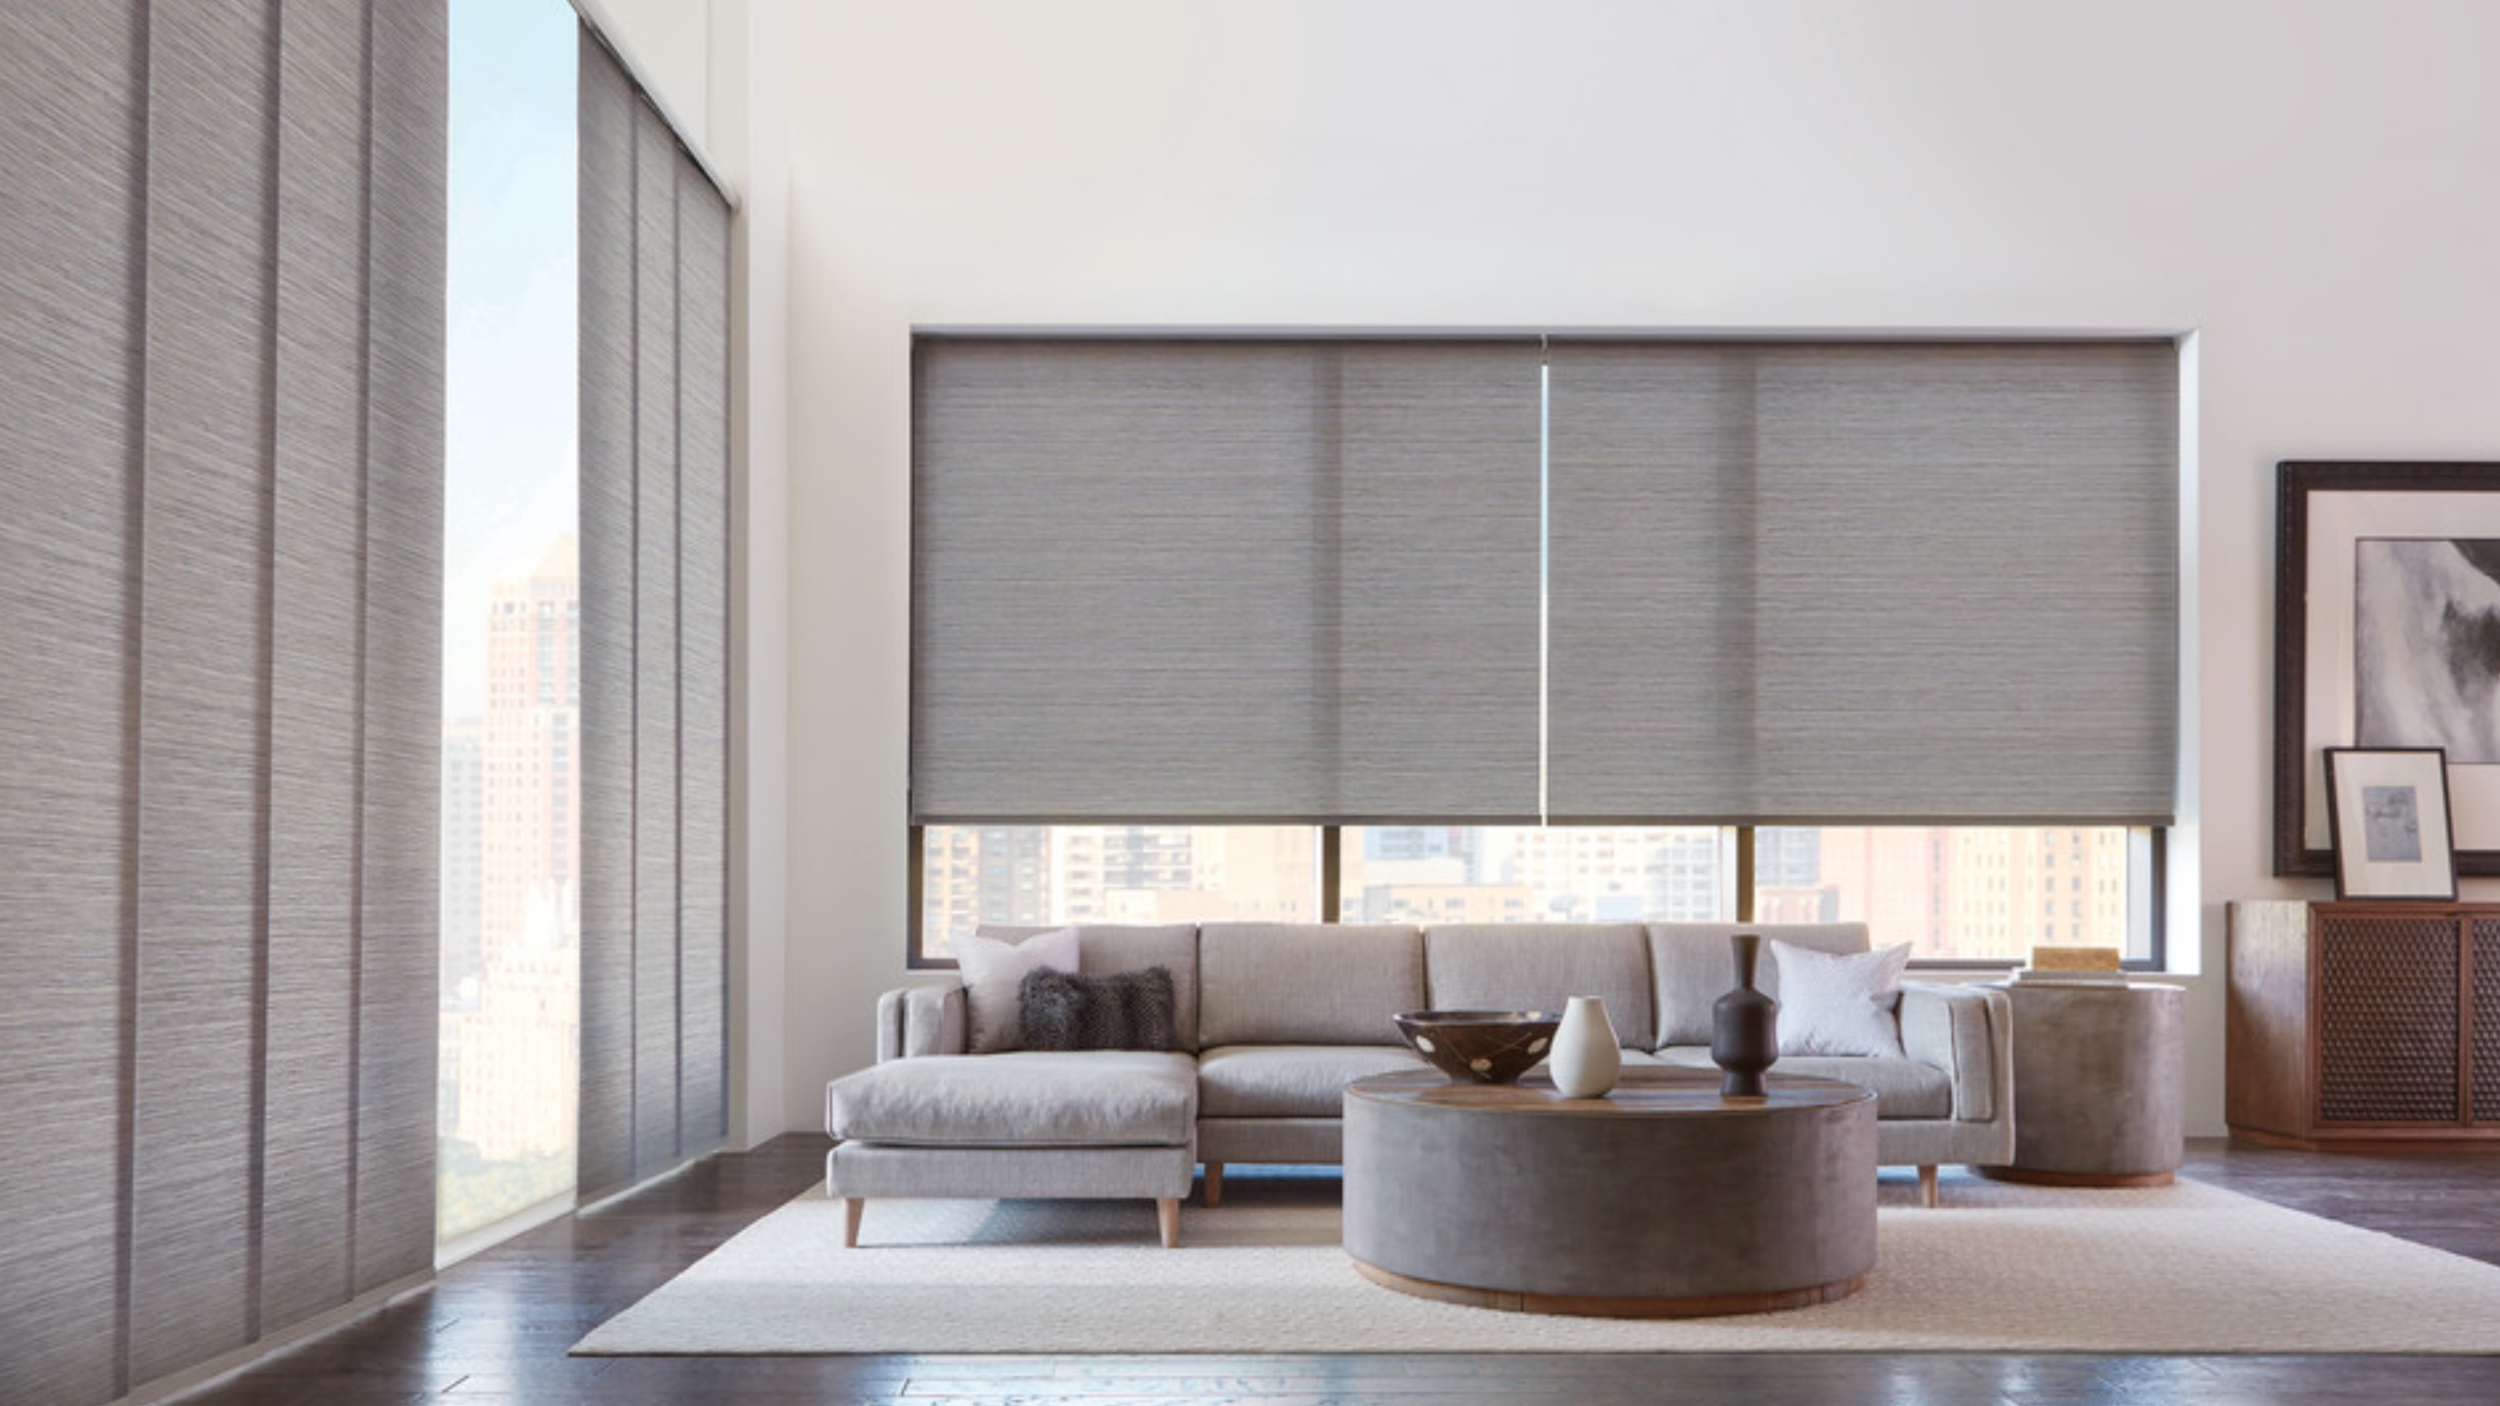 roller shades - Choose from a variety of opacity levels when you choose Premier Blinds Ltd for your residential or commercial roller shades. From sheer, light-filtering to complete blackout shades, you will be able to customize any room in your home to suit your unique style and taste. While custom roller shades are designed to make a statement on their own, they also pair beautifully with custom drapery. Used separately or with complementary custom window treatments, these shades are available in a wide range of gorgeous fabrics, including grass-like weaves, which can be coordinated with most sliding panels. Plus, with roller shades, your furnishings receive the UV protection you need without sacrificing your view to the outside.